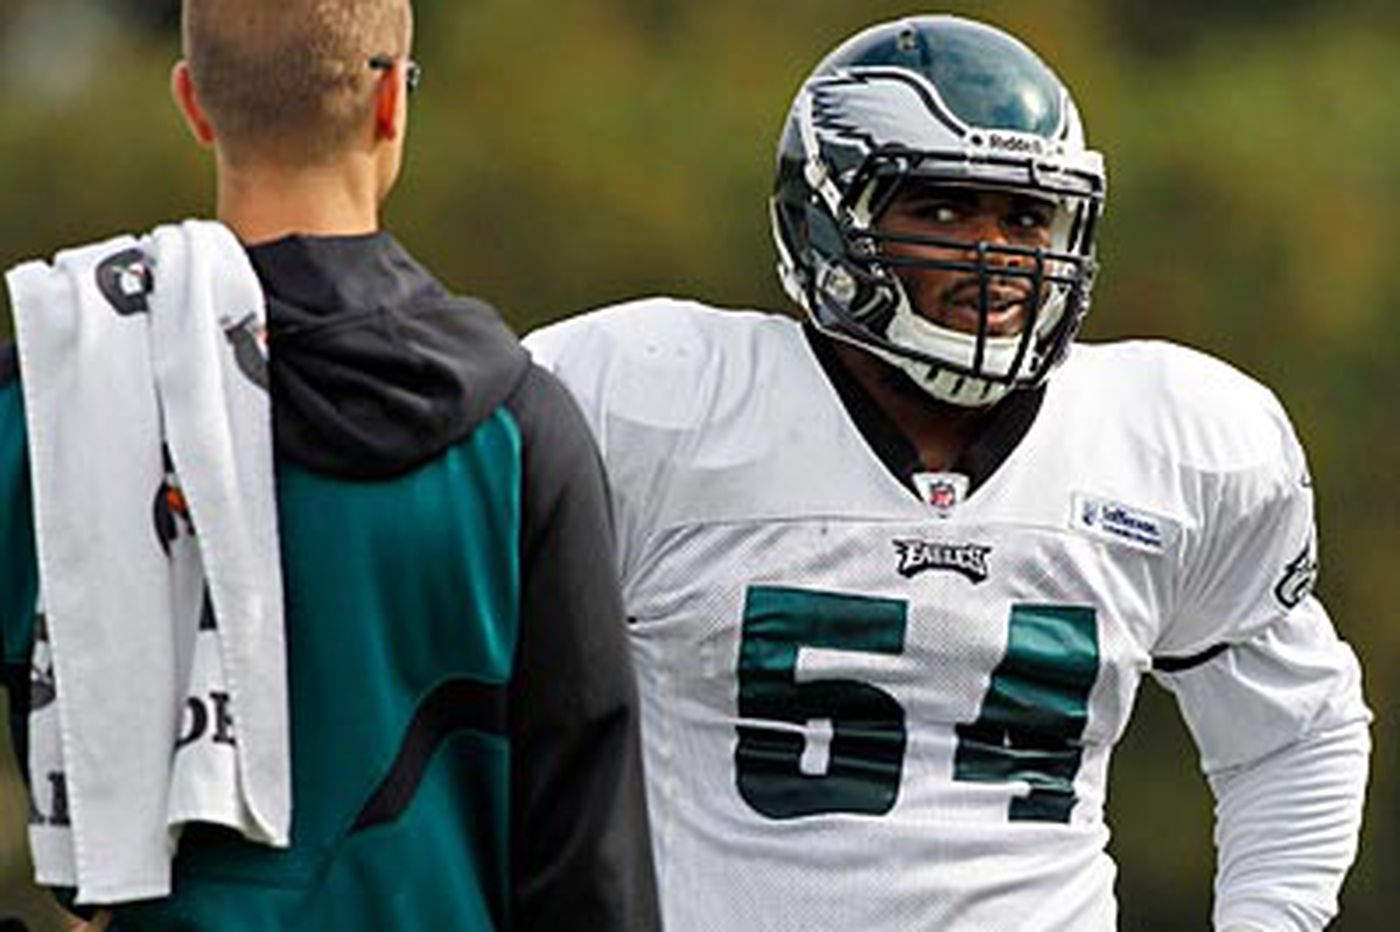 Eagles Notebook: Graham wants a crack at Eagles lineup